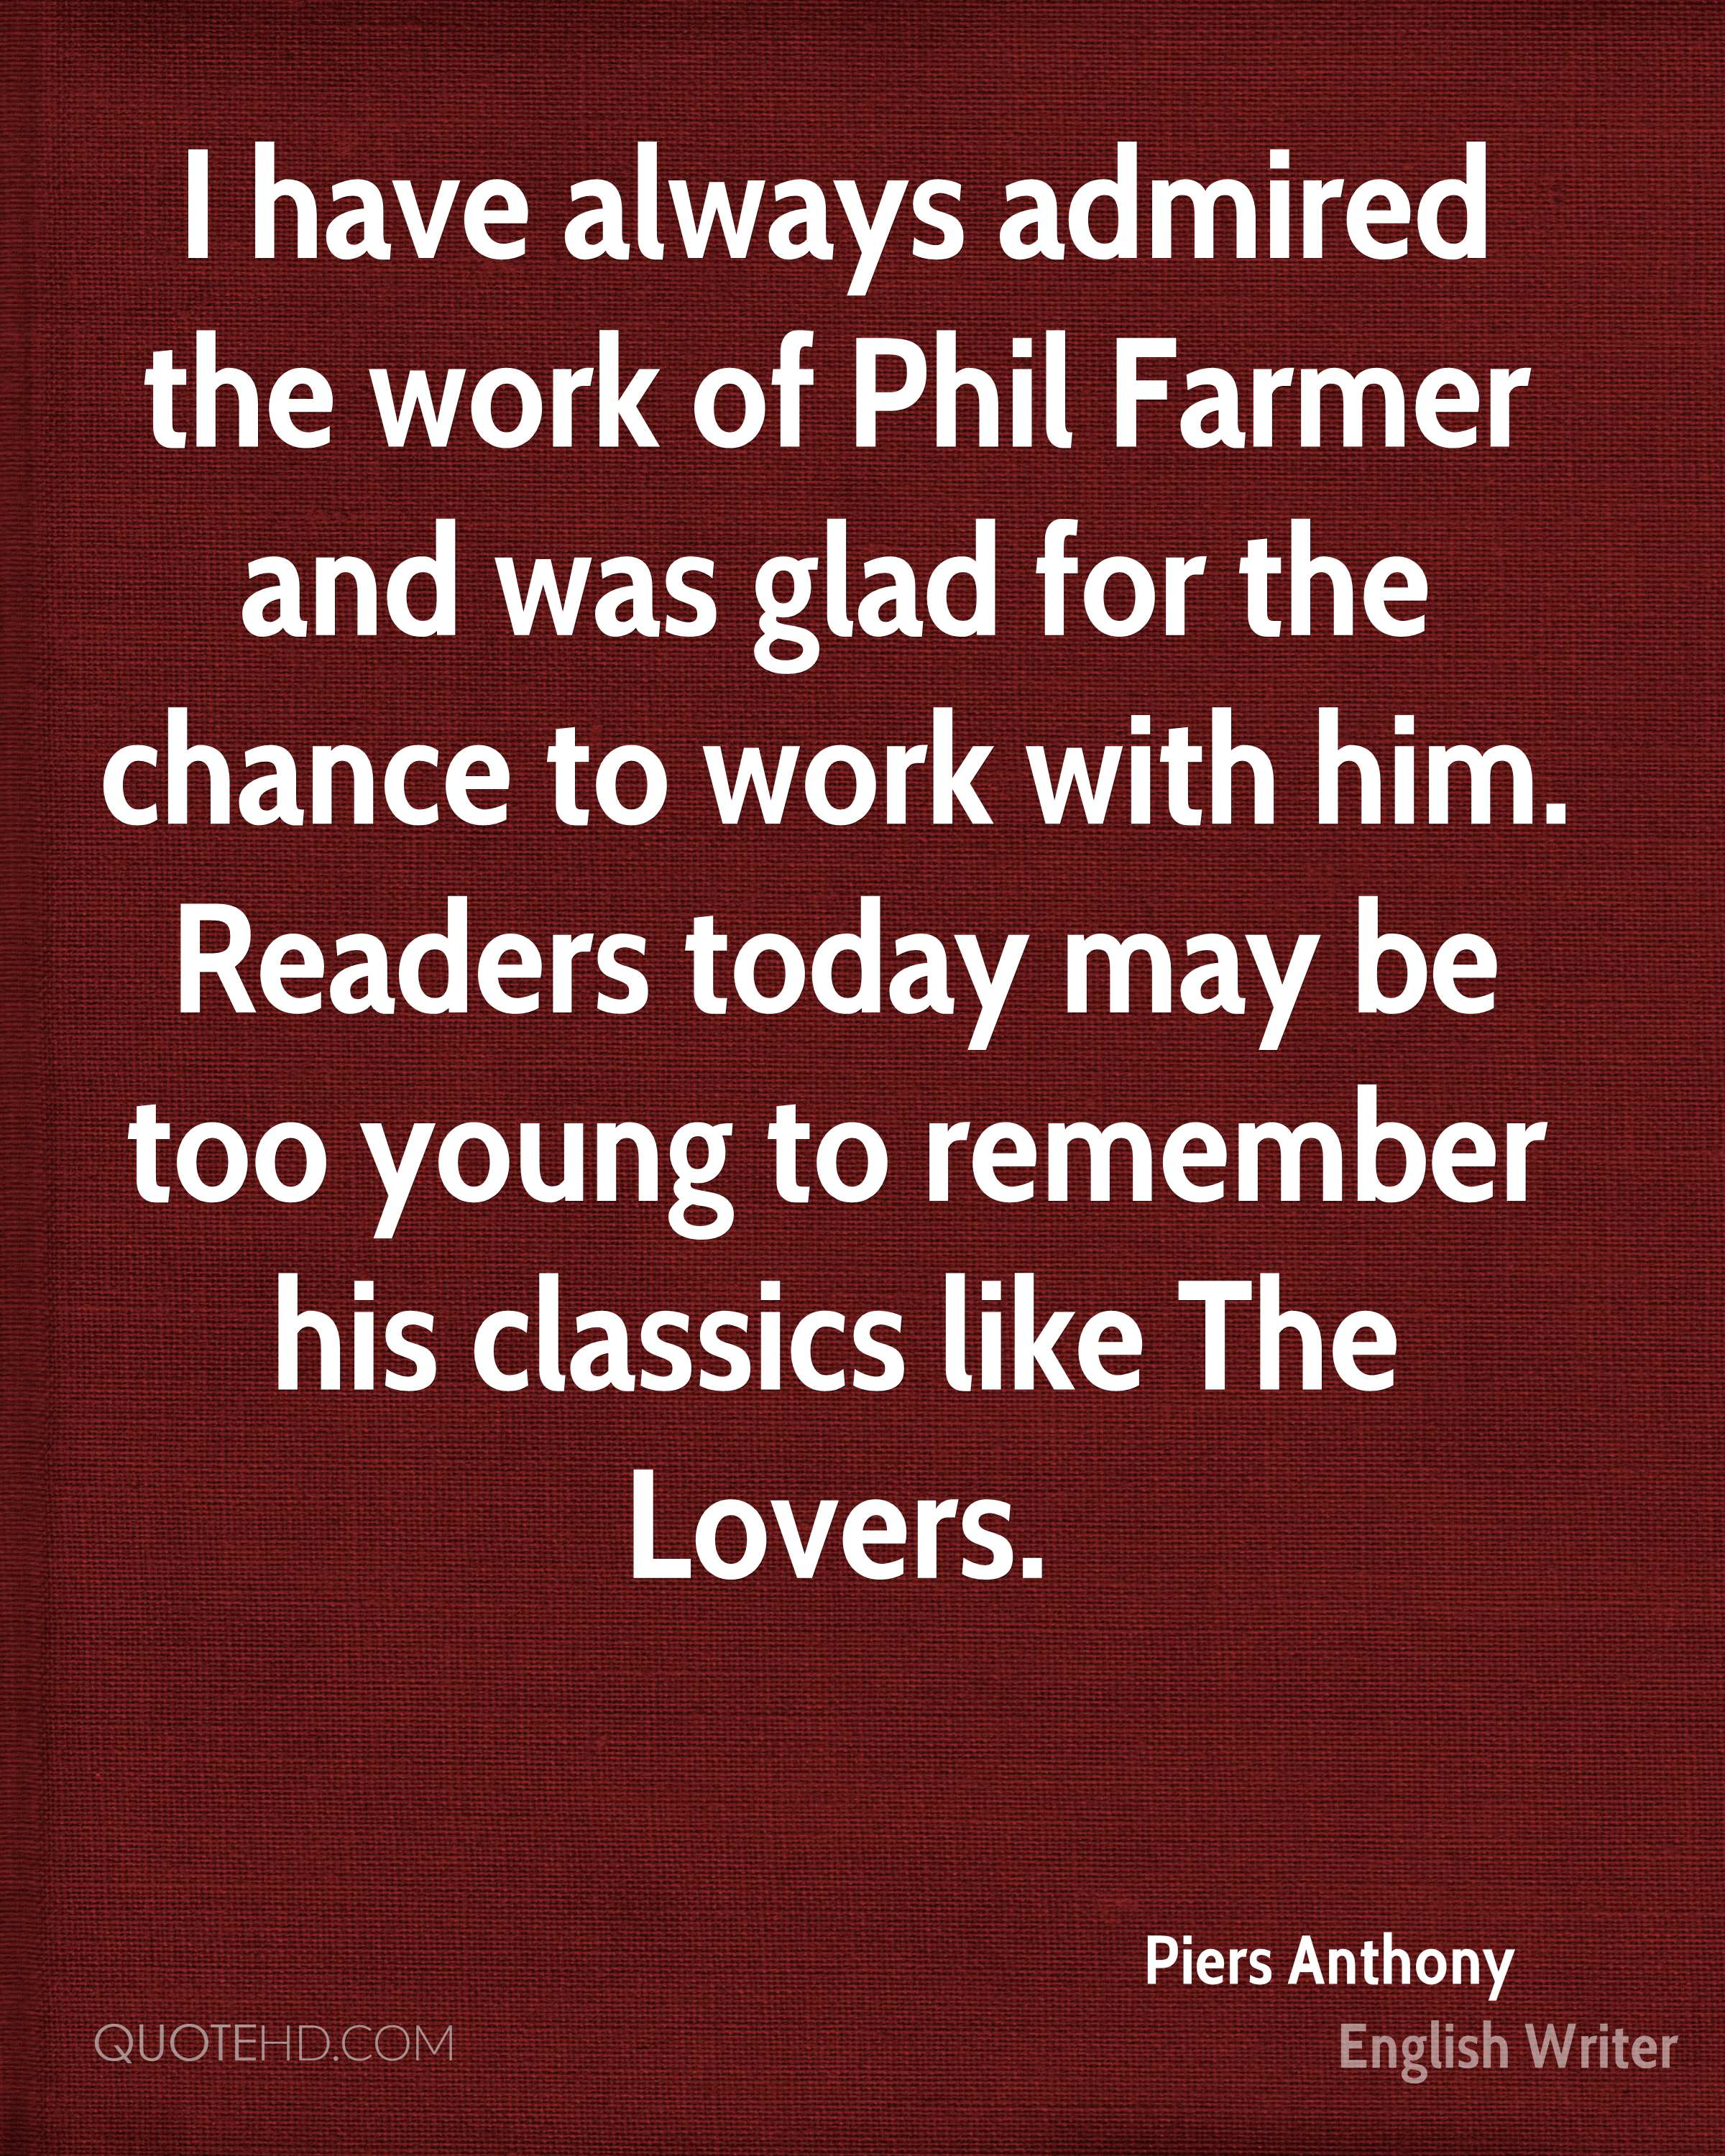 I have always admired the work of Phil Farmer and was glad for the chance to work with him. Readers today may be too young to remember his classics like The Lovers.